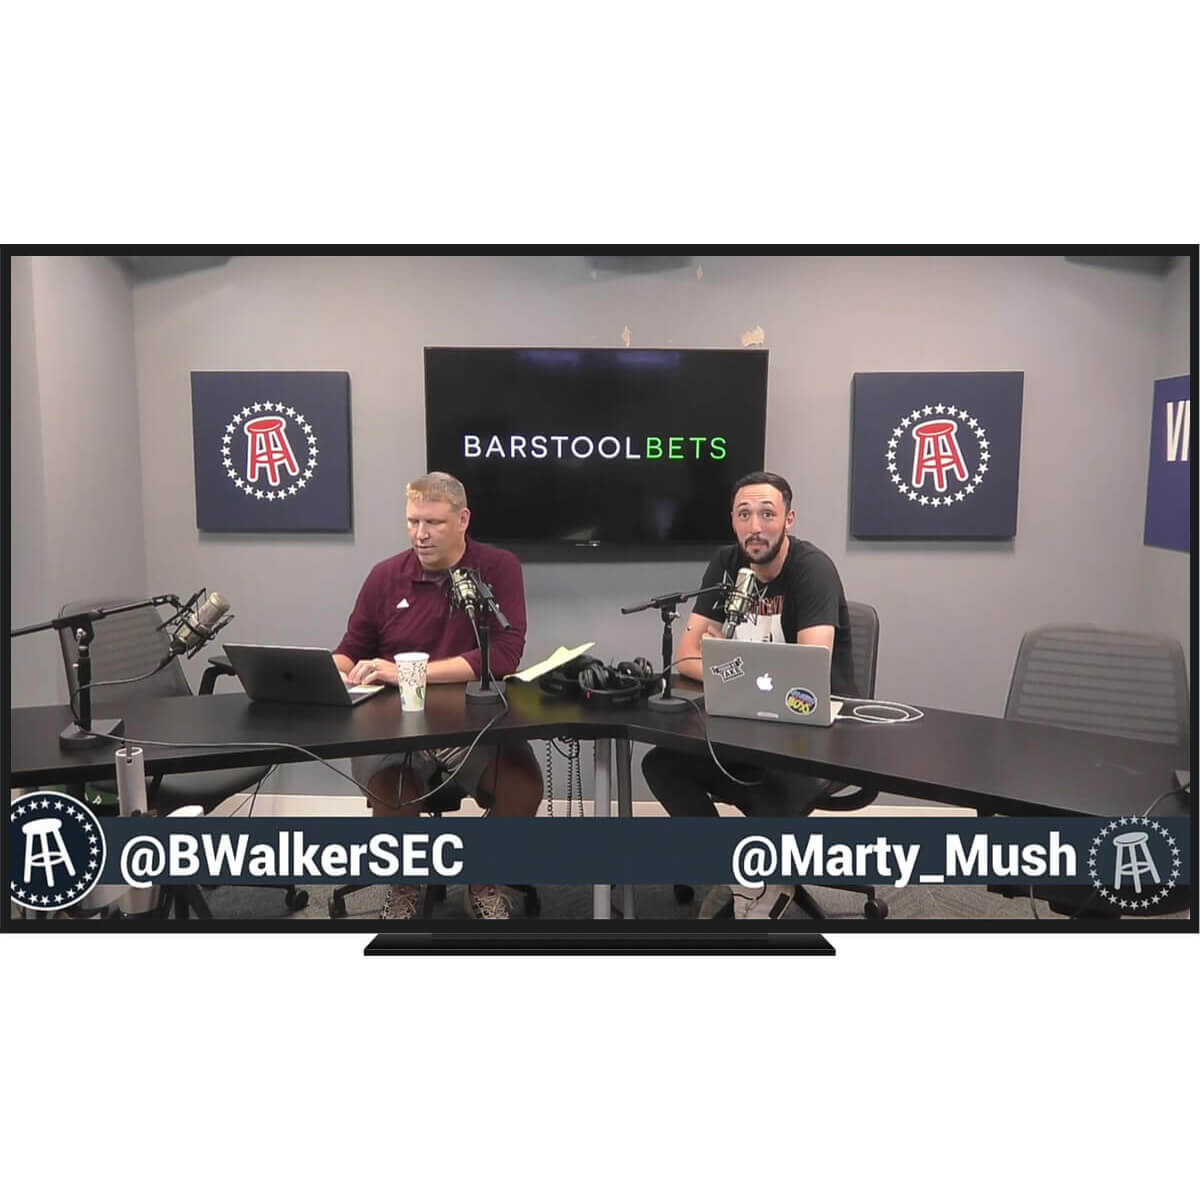 Barstool Bets on Android TV